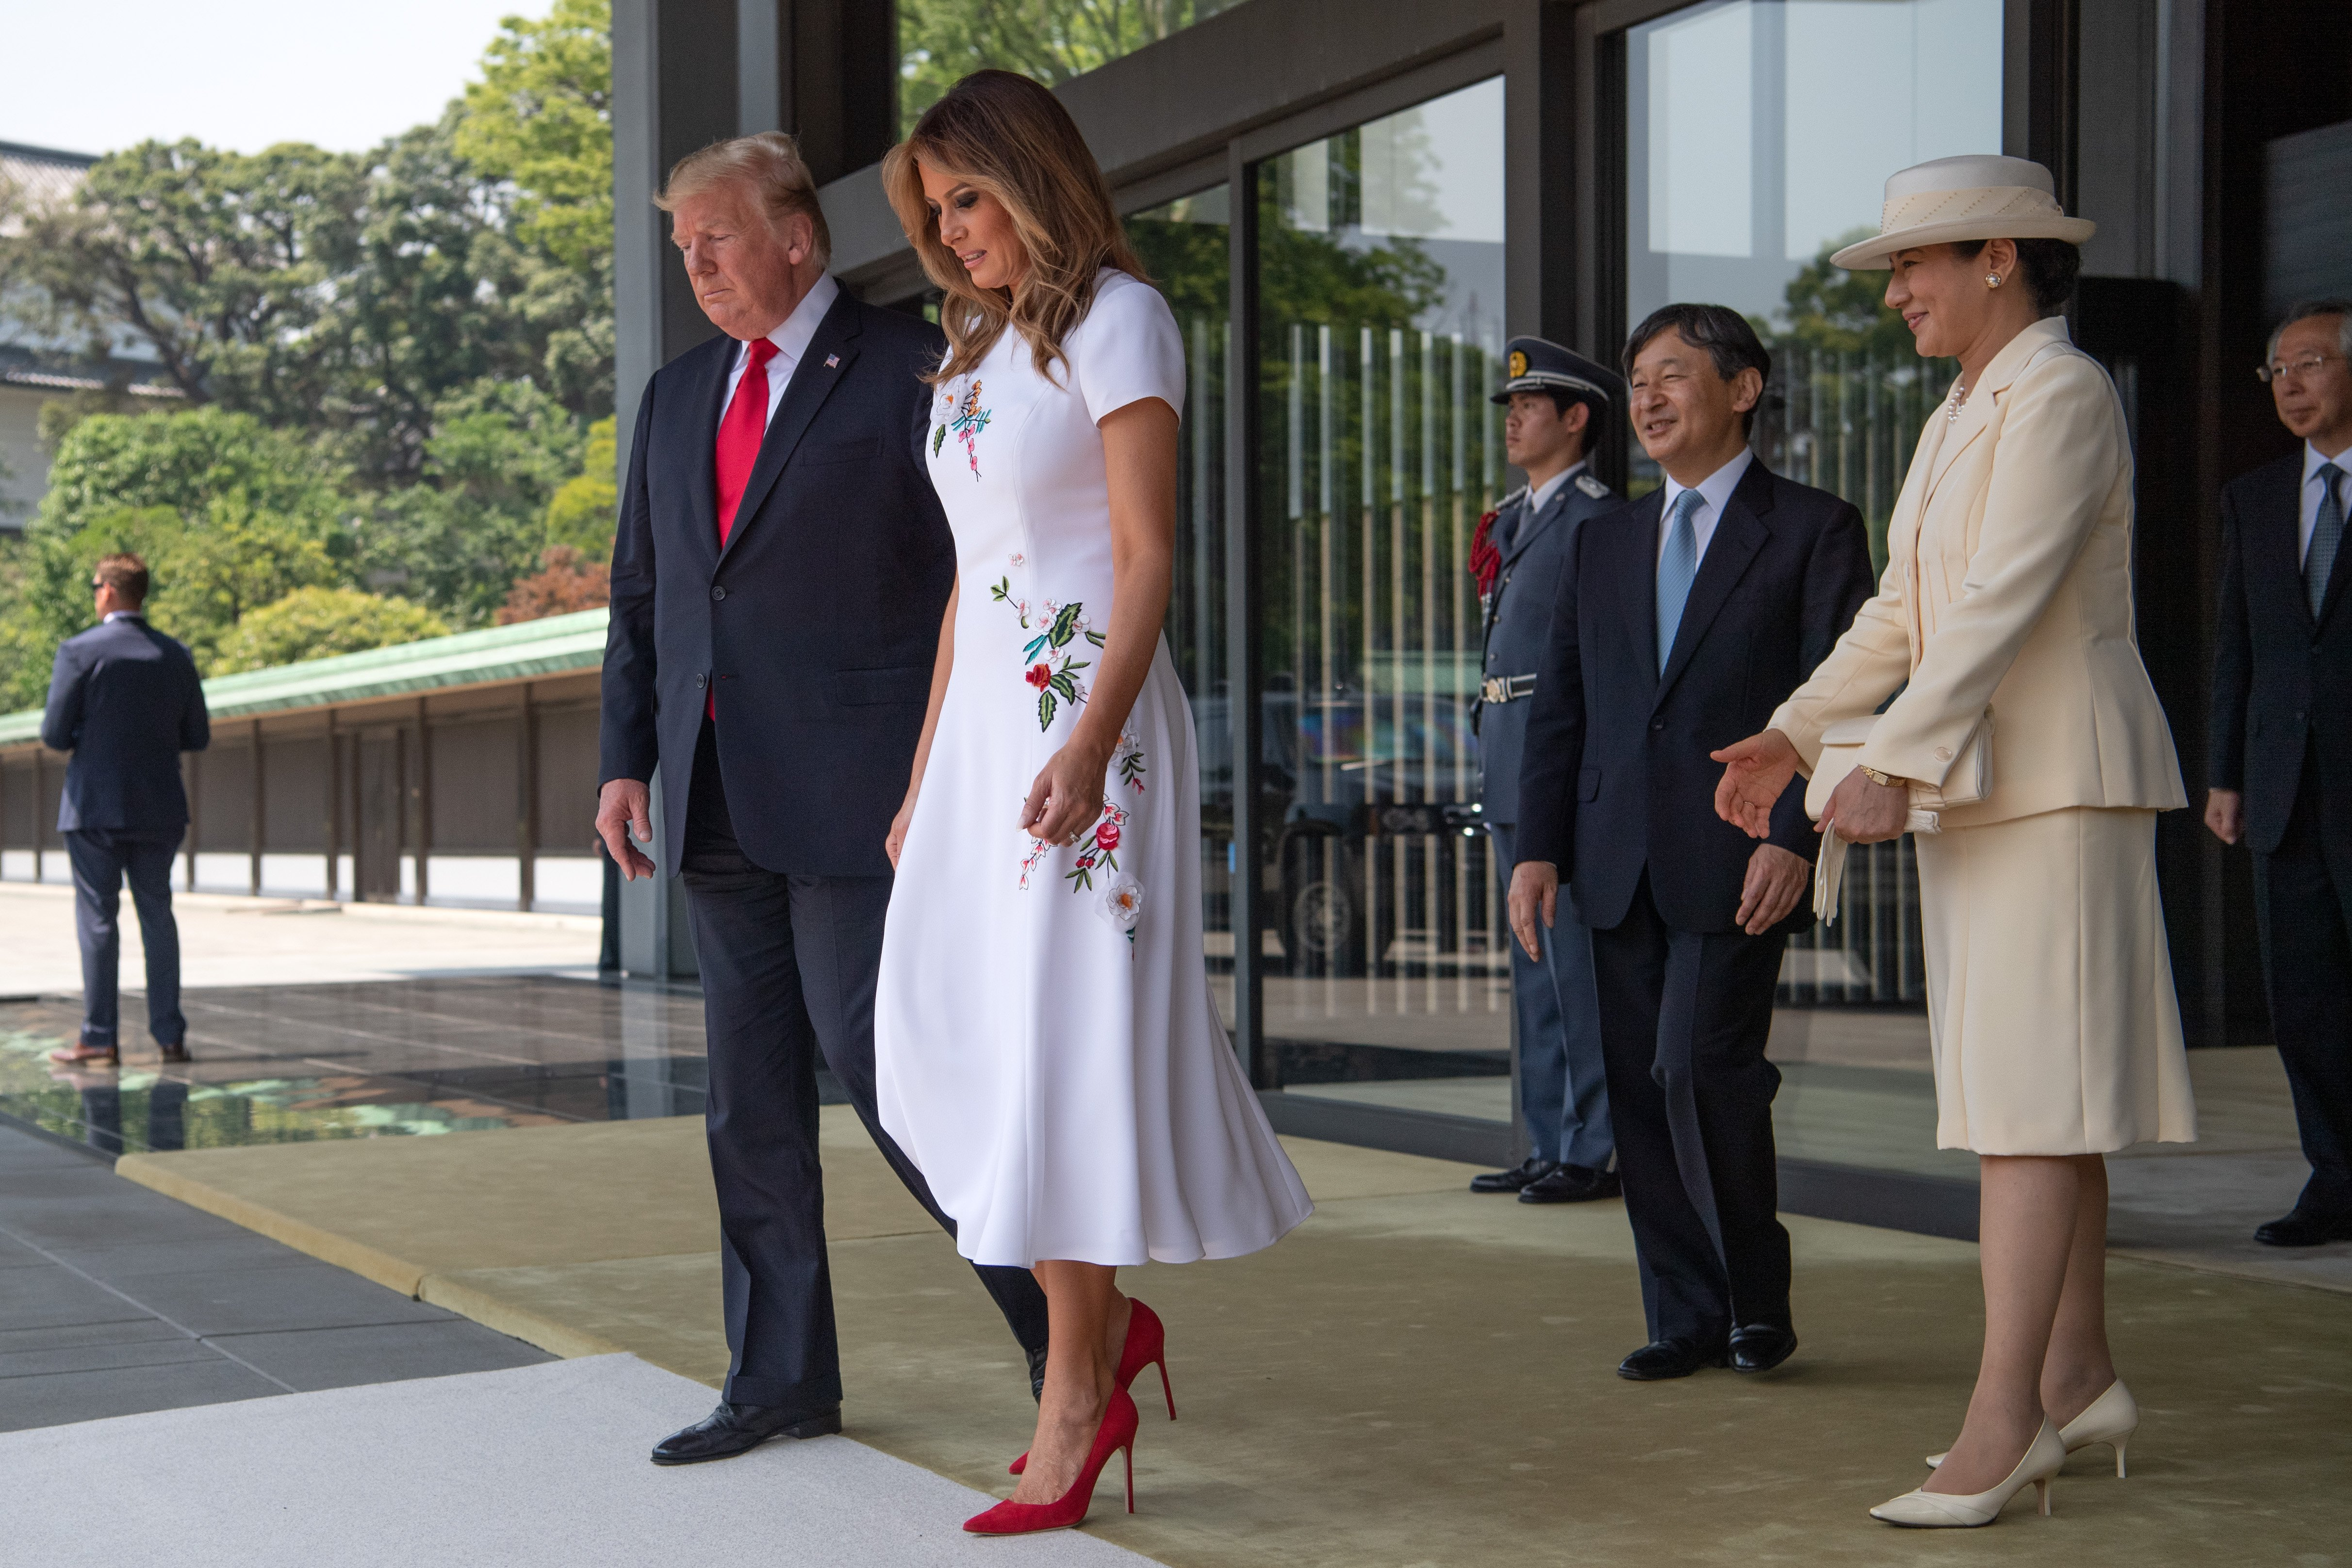 President Donald and First Lady Melania Trump meet Emperor Naruhito and Empress Masako in Tokyo | Photo: Getty Images